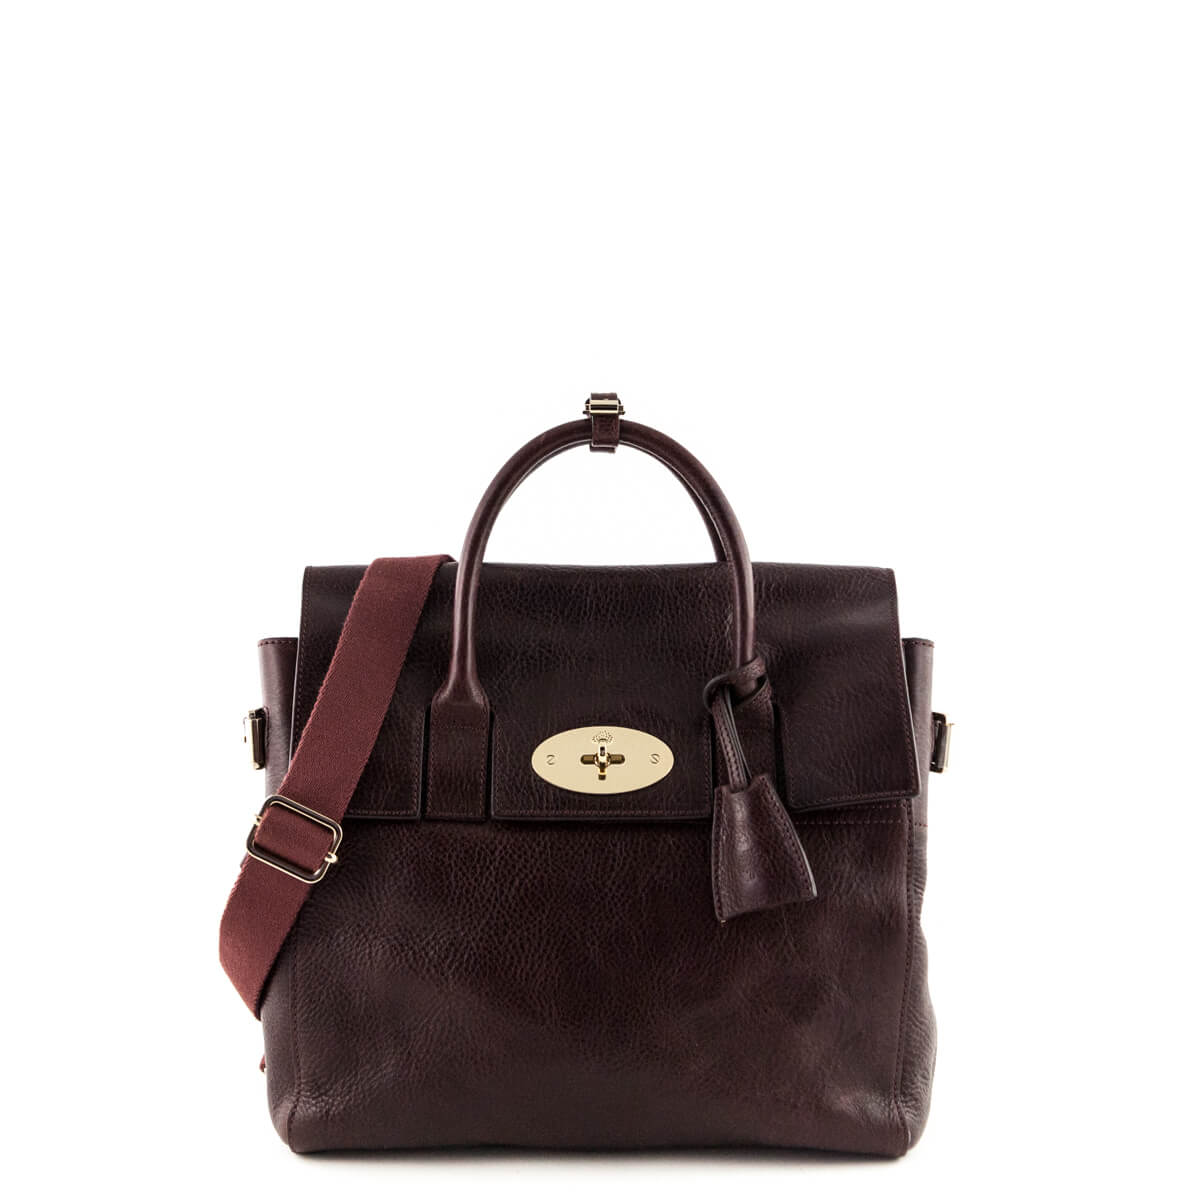 Mulberry Oxblood Cara Delevingne Convertible Backpack - LOVE that BAG -  Preowned Authentic Designer Handbags ... d454b4e826